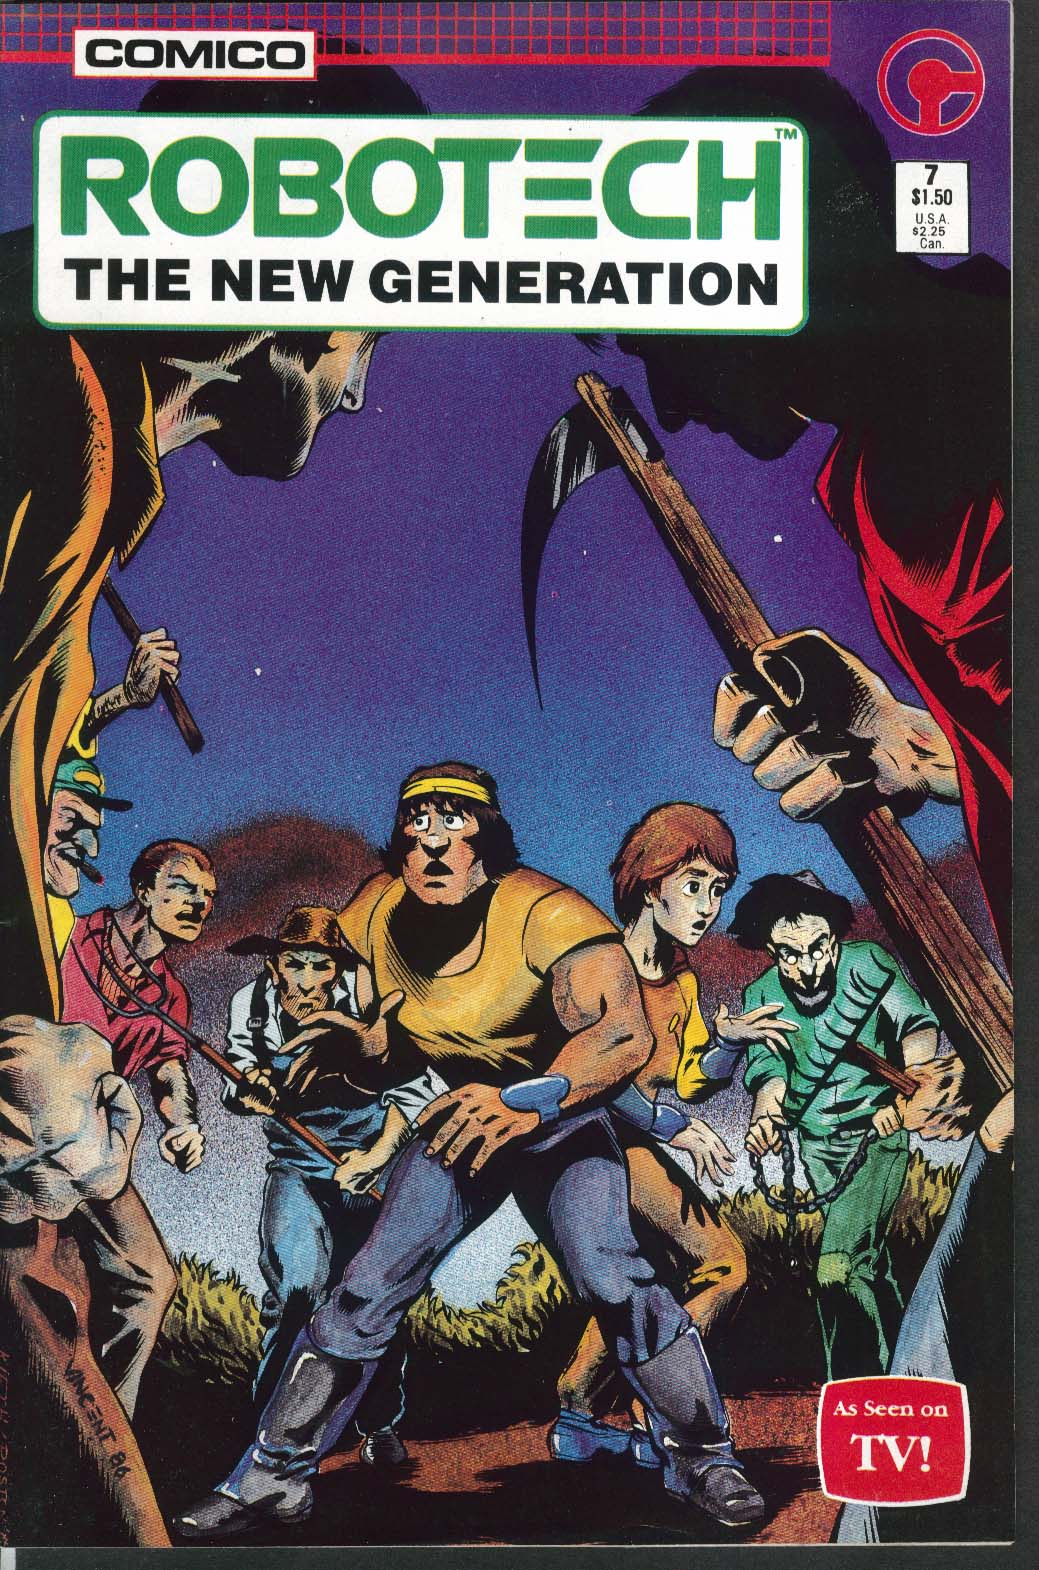 ROBOTECH New Generation #7 Comico comic book 4 1986